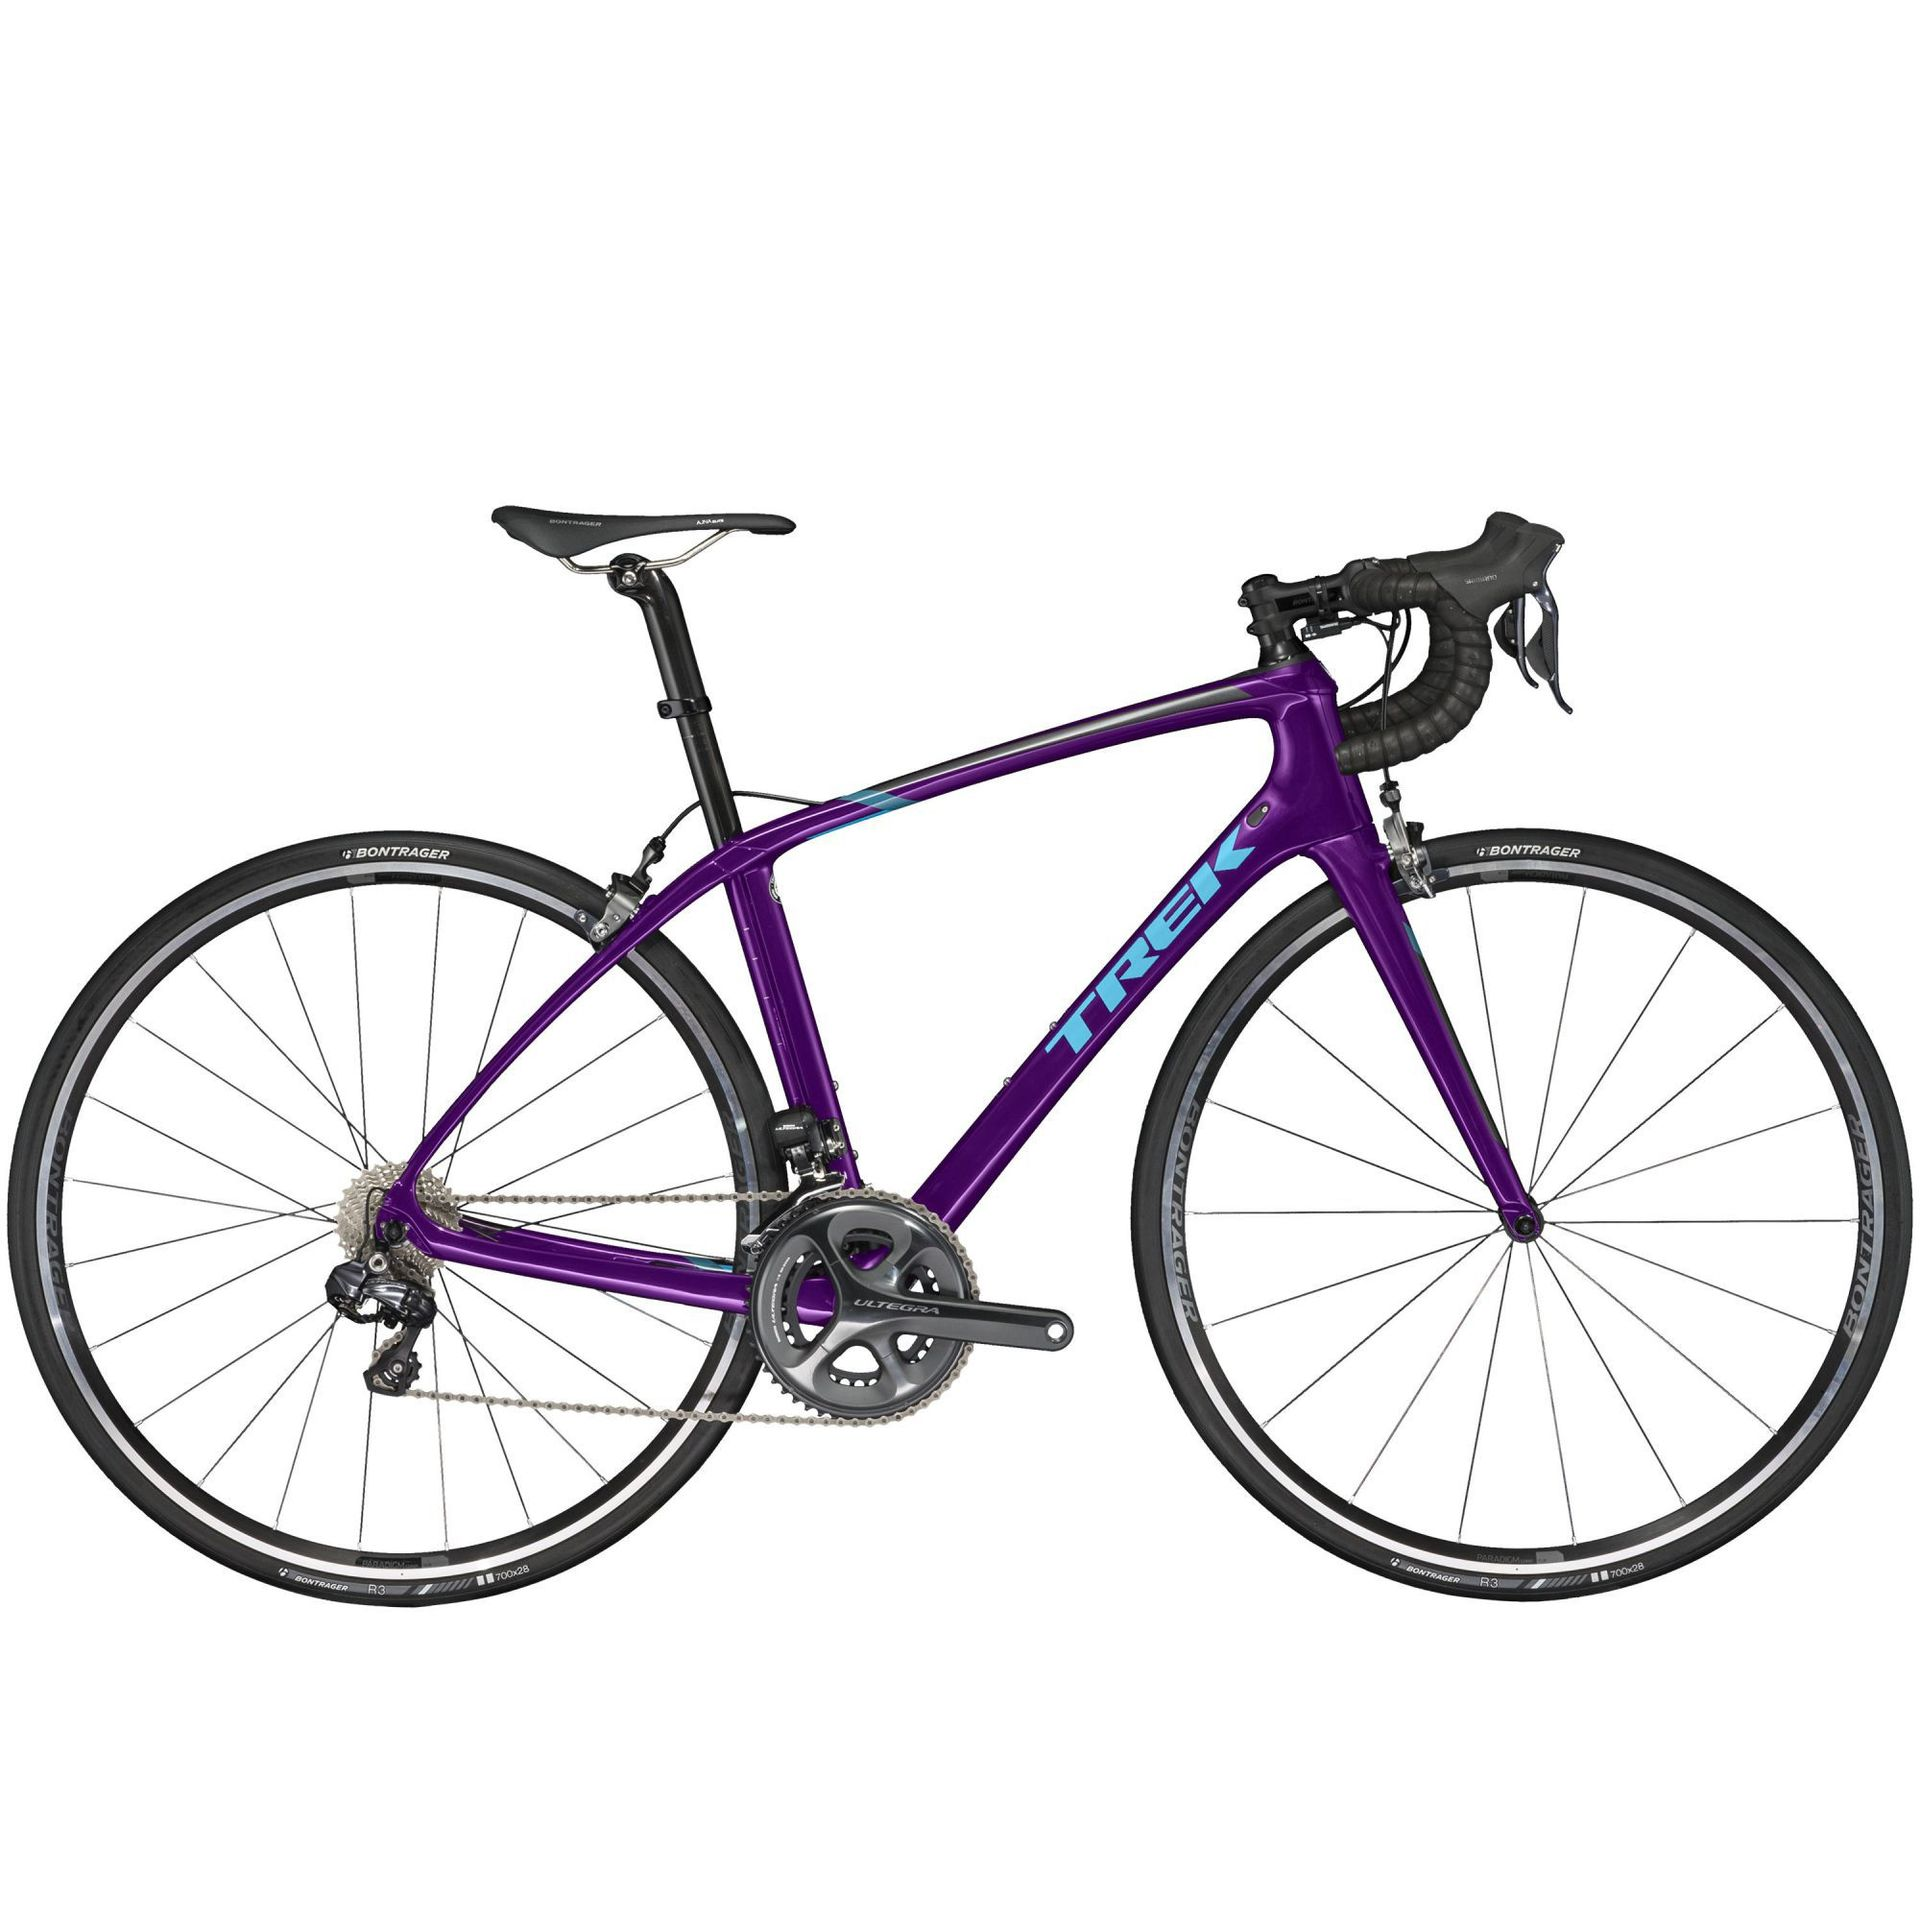 ROWER TREK SILQUE SLR 7 KOŁO 28 PURPLE LOTUS 1